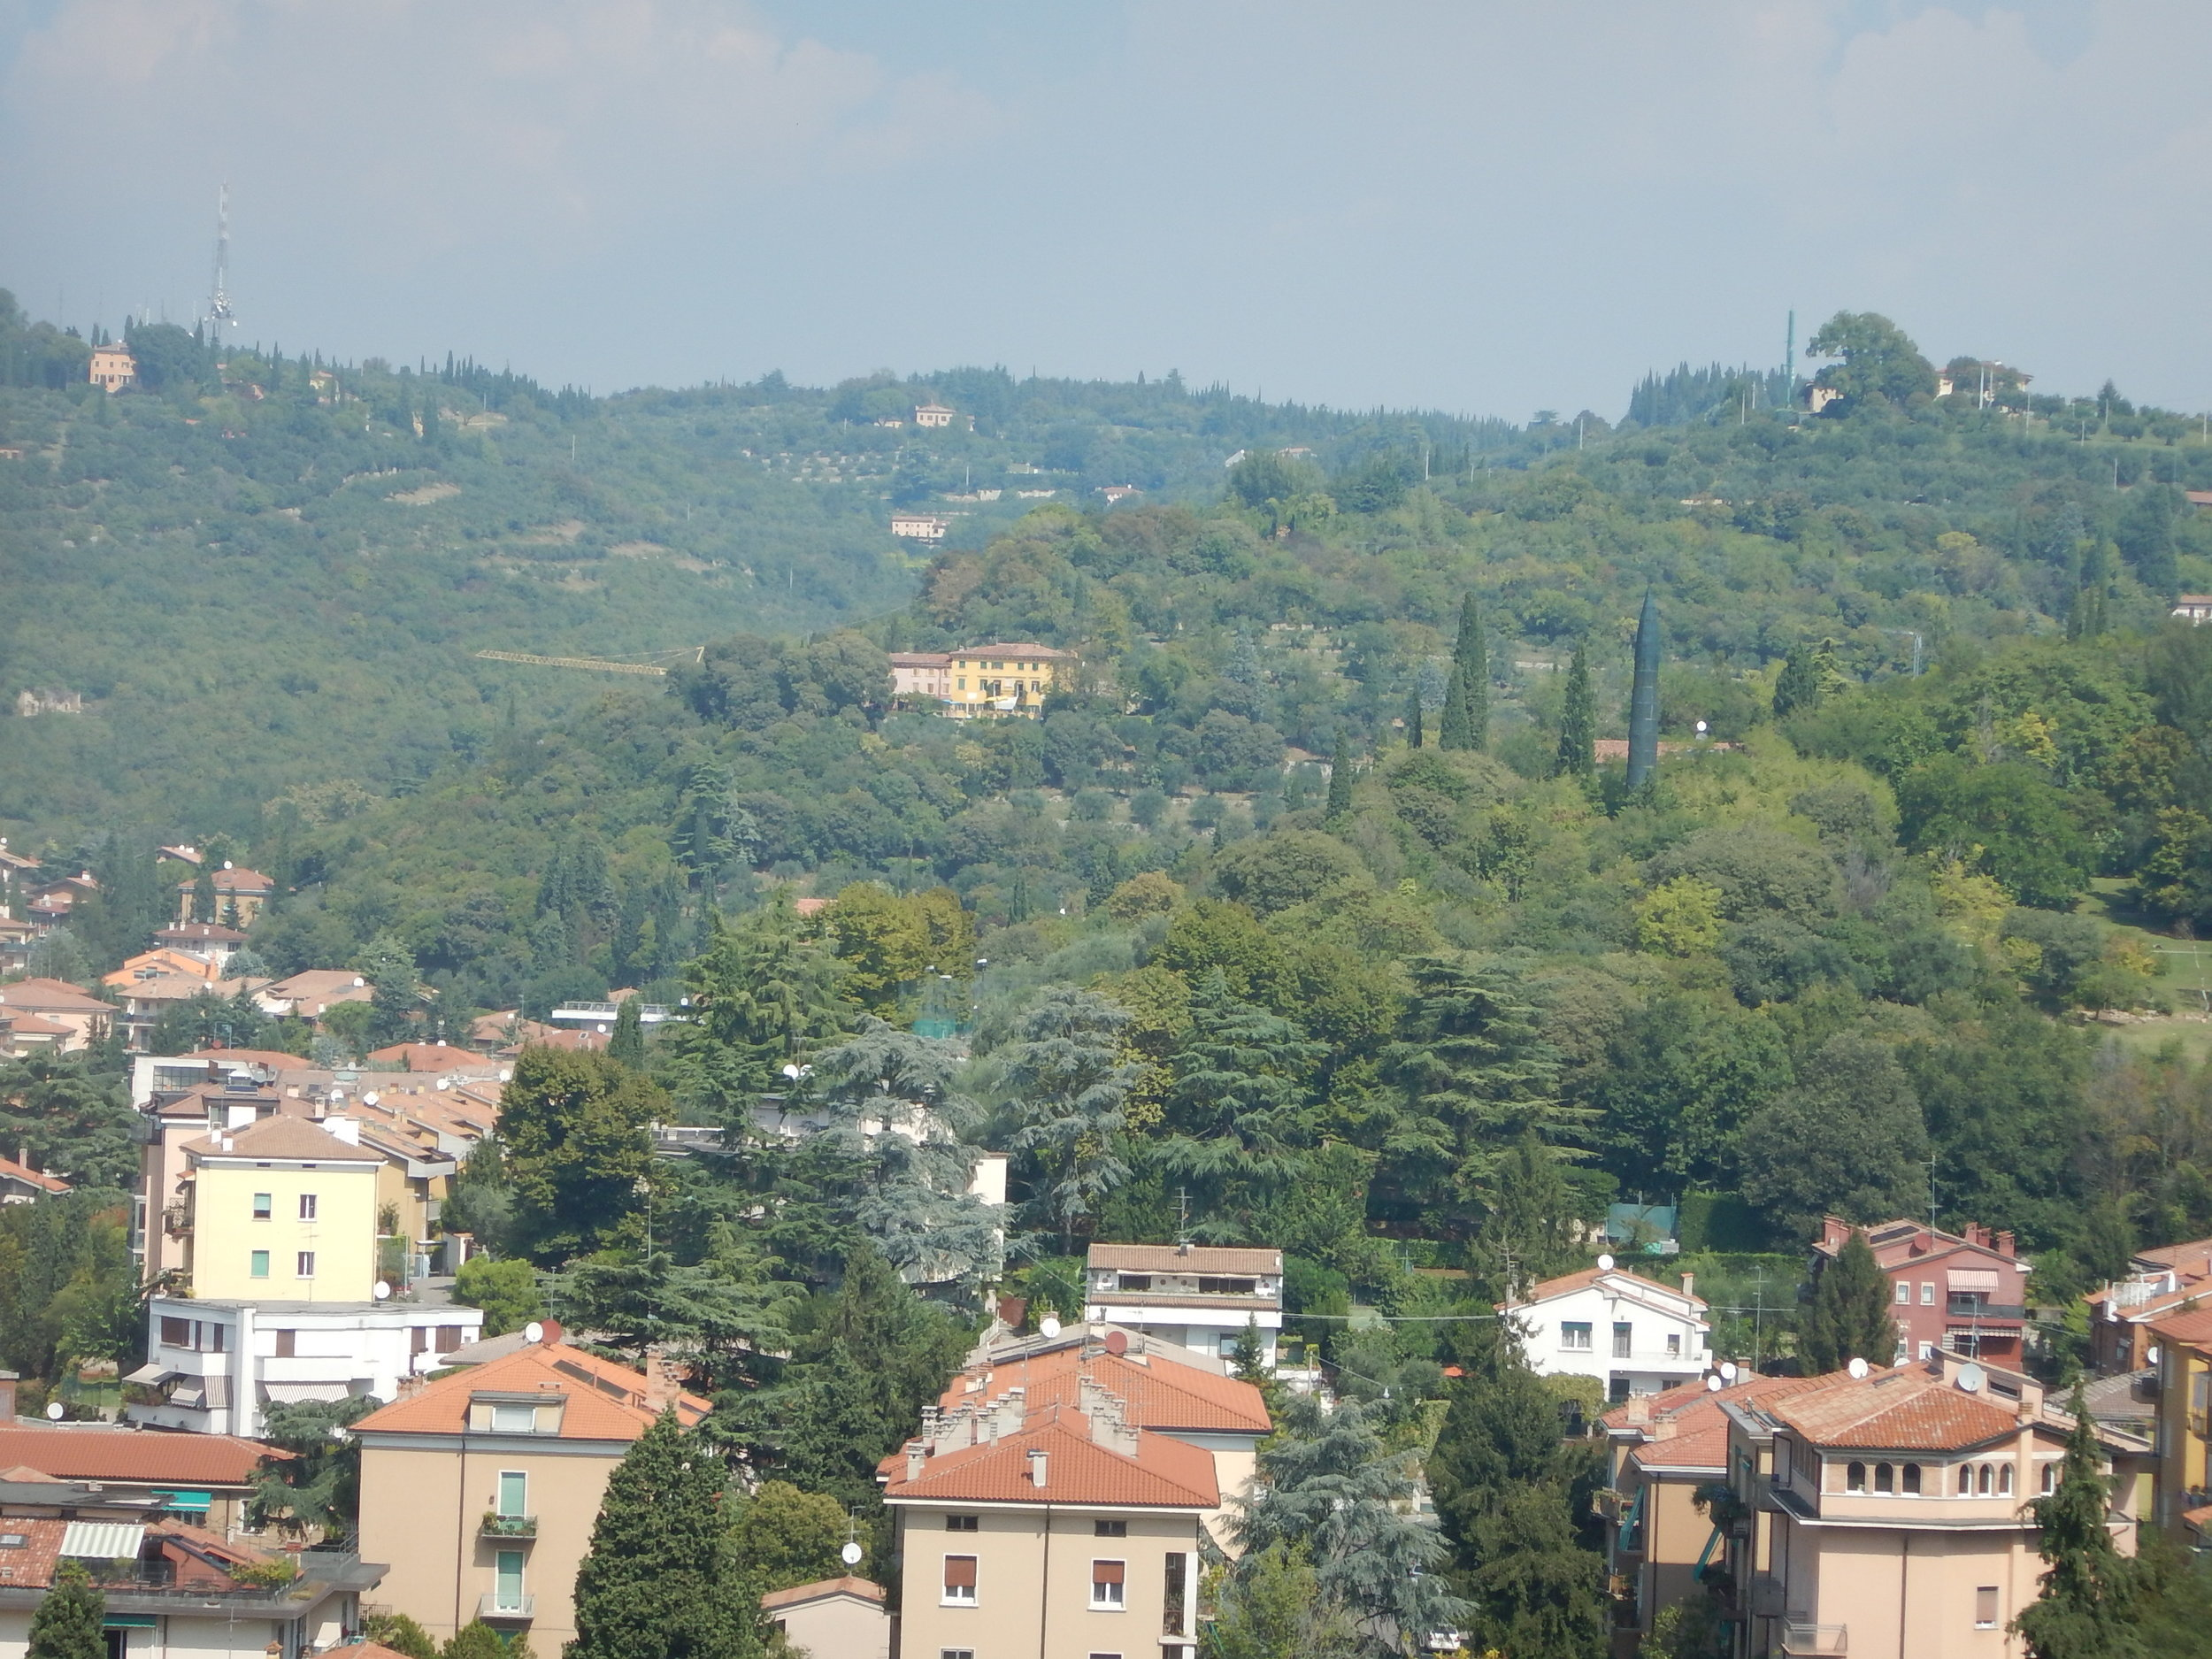 the view from St Peters church looking away from Verona old town. What is that green structure diduised as a pencil pine?? Any thoughts?